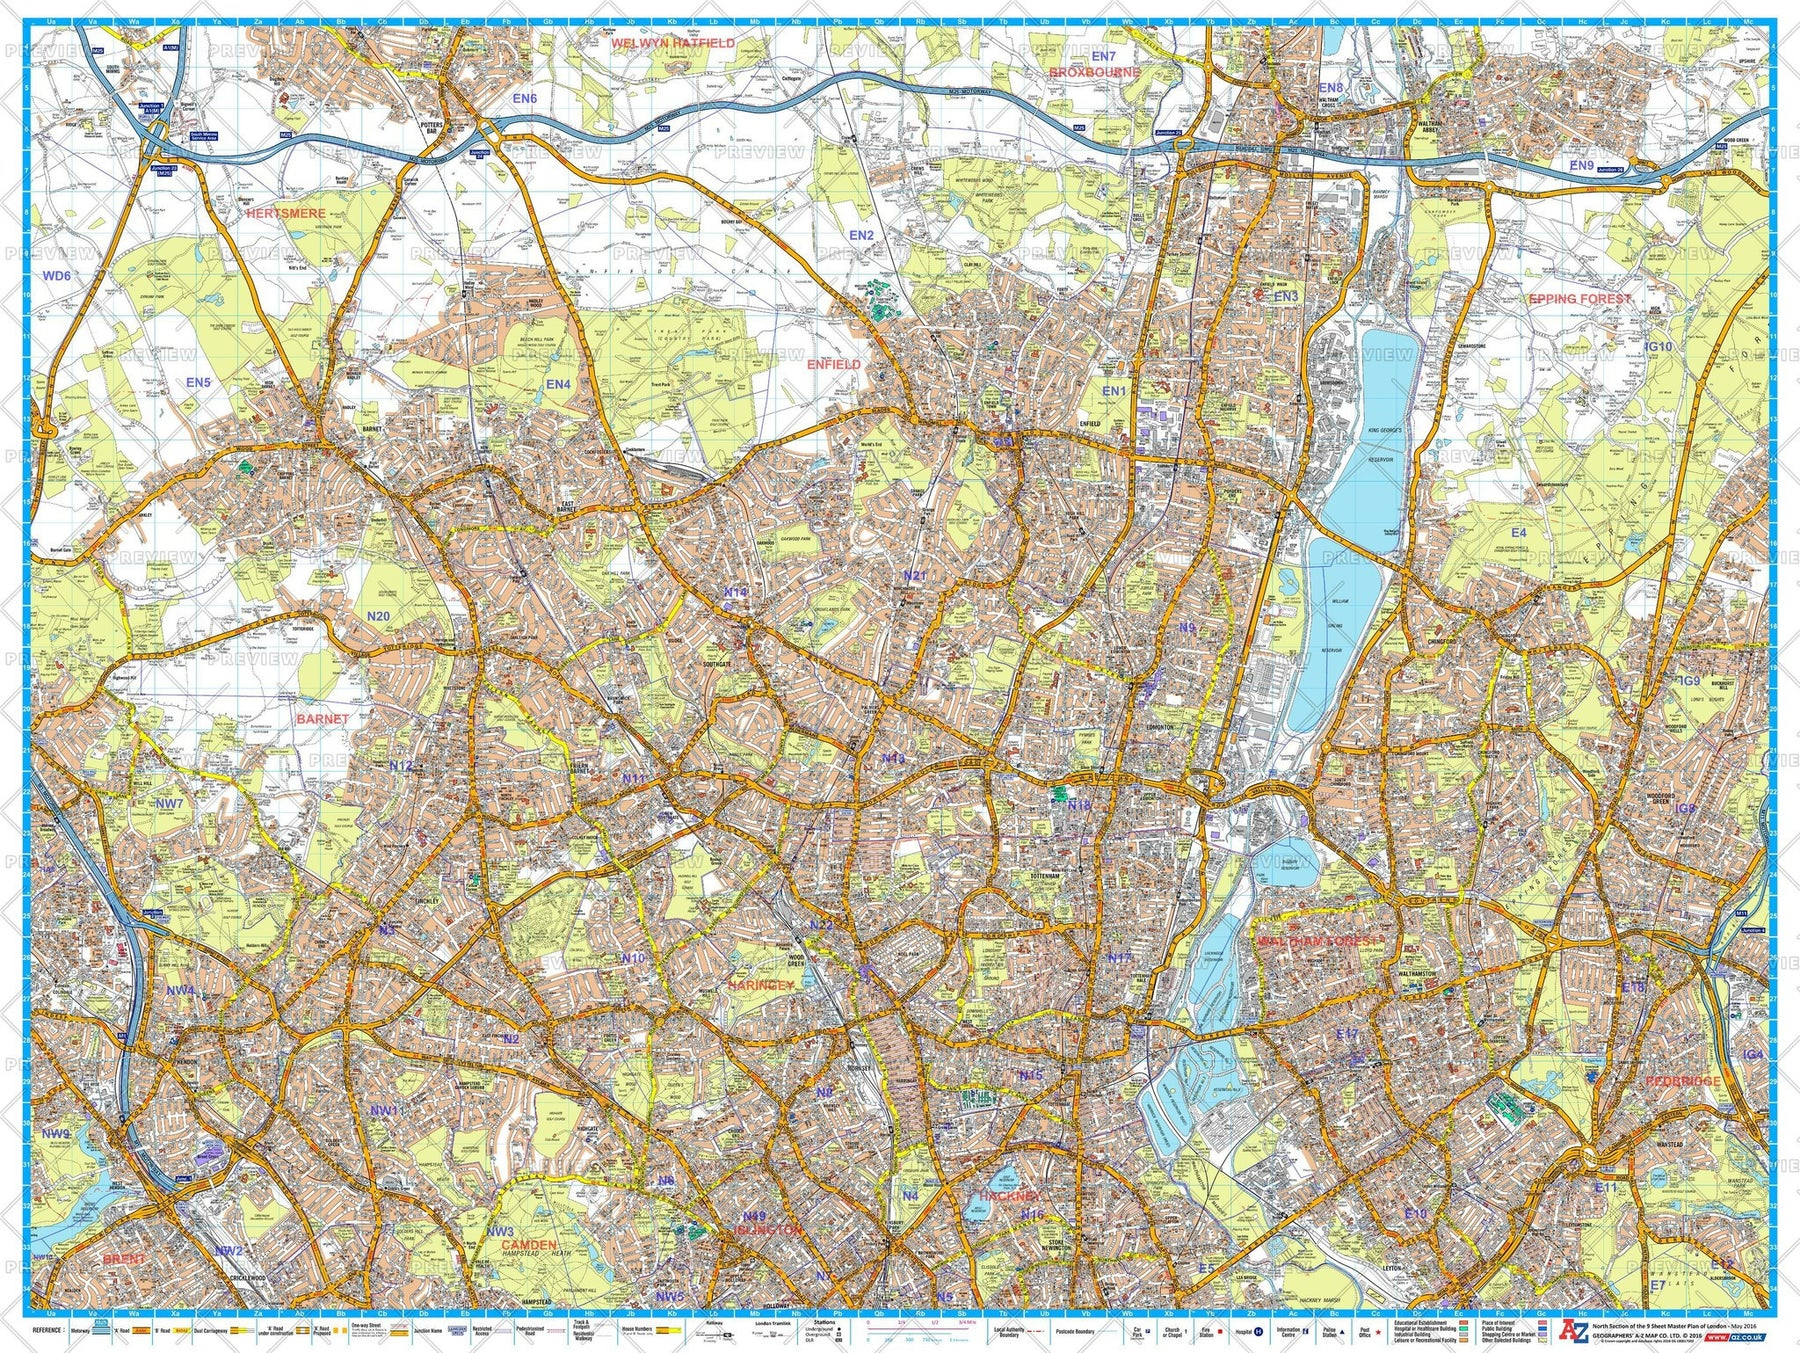 London Postcode Map With Streets.A Z North London Postcode Street Map